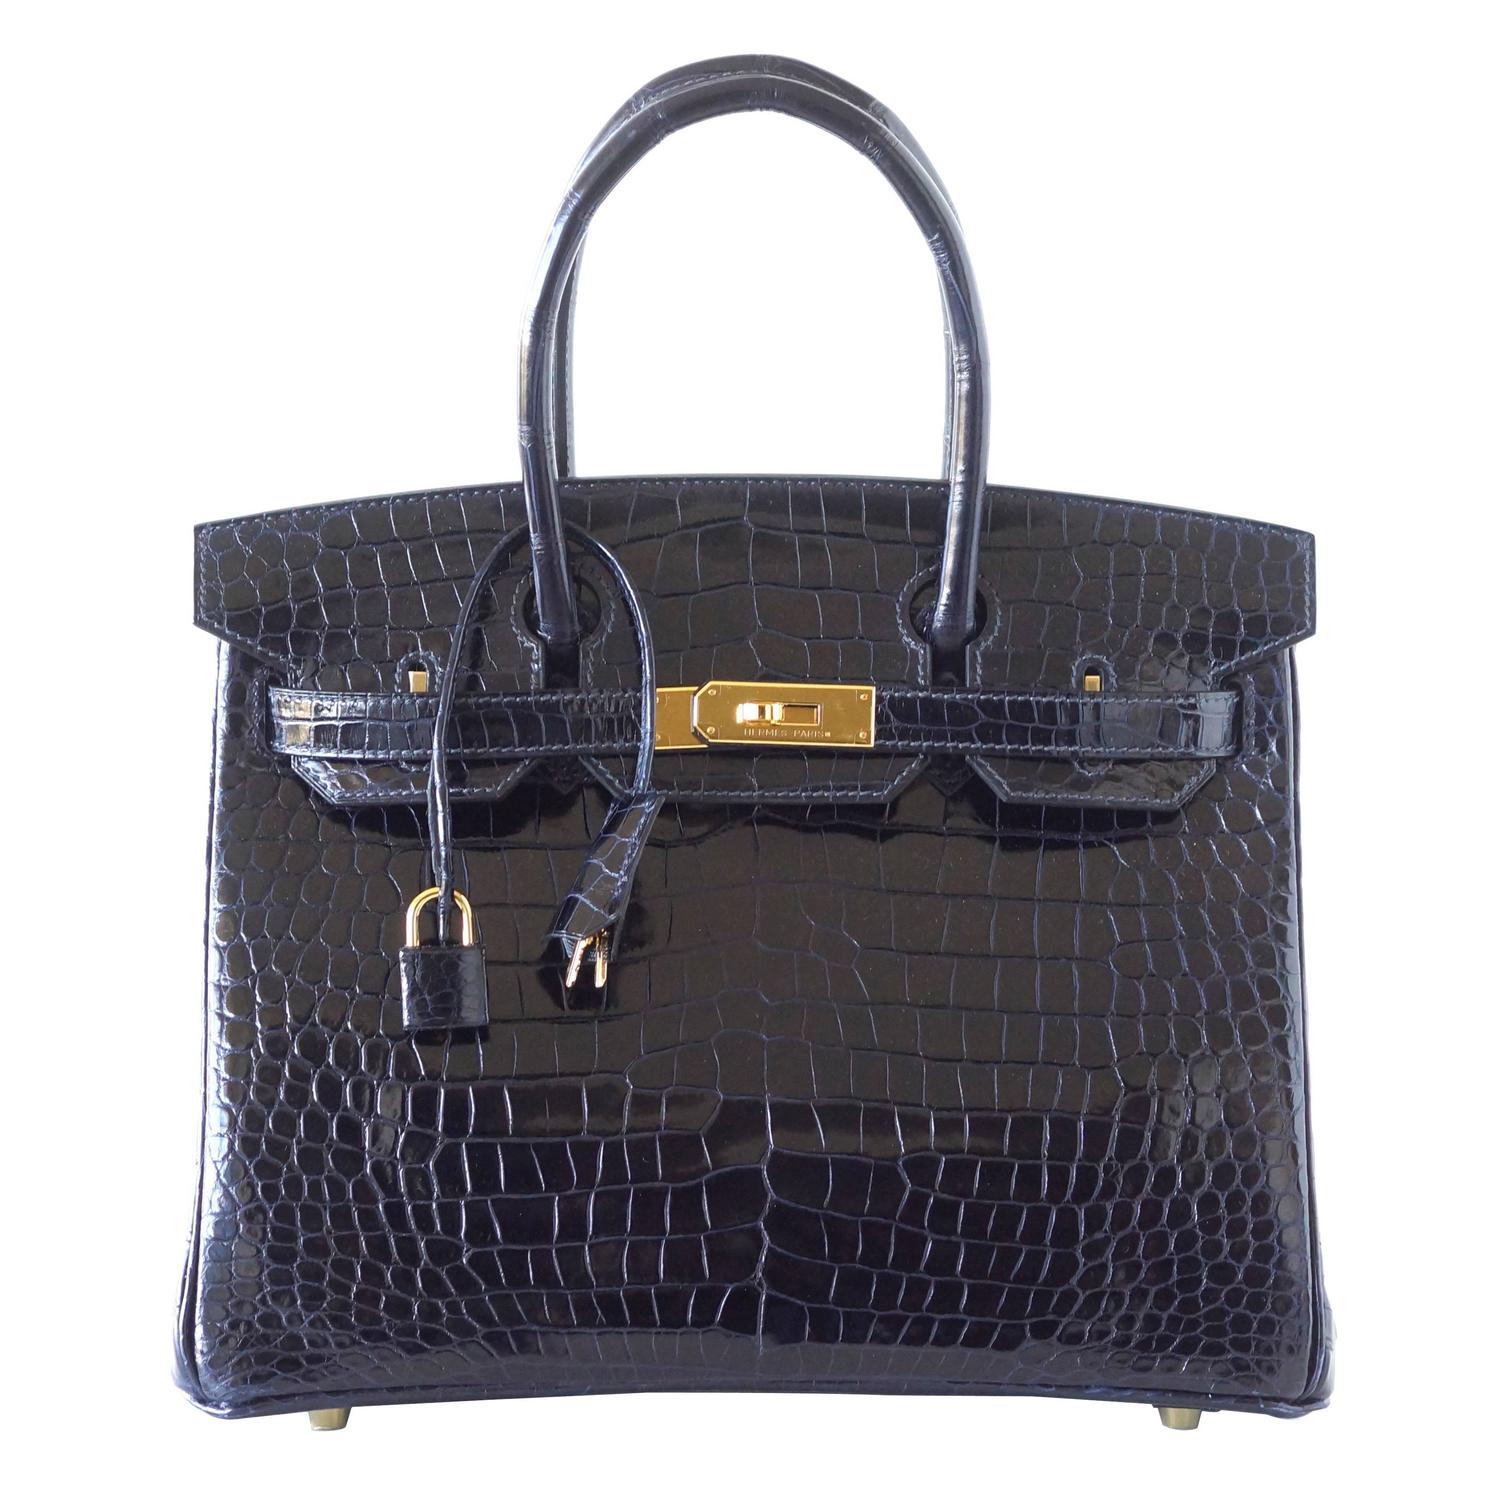 white birkin - Contemporary Top Handle Bags at 1stdibs - Page 5